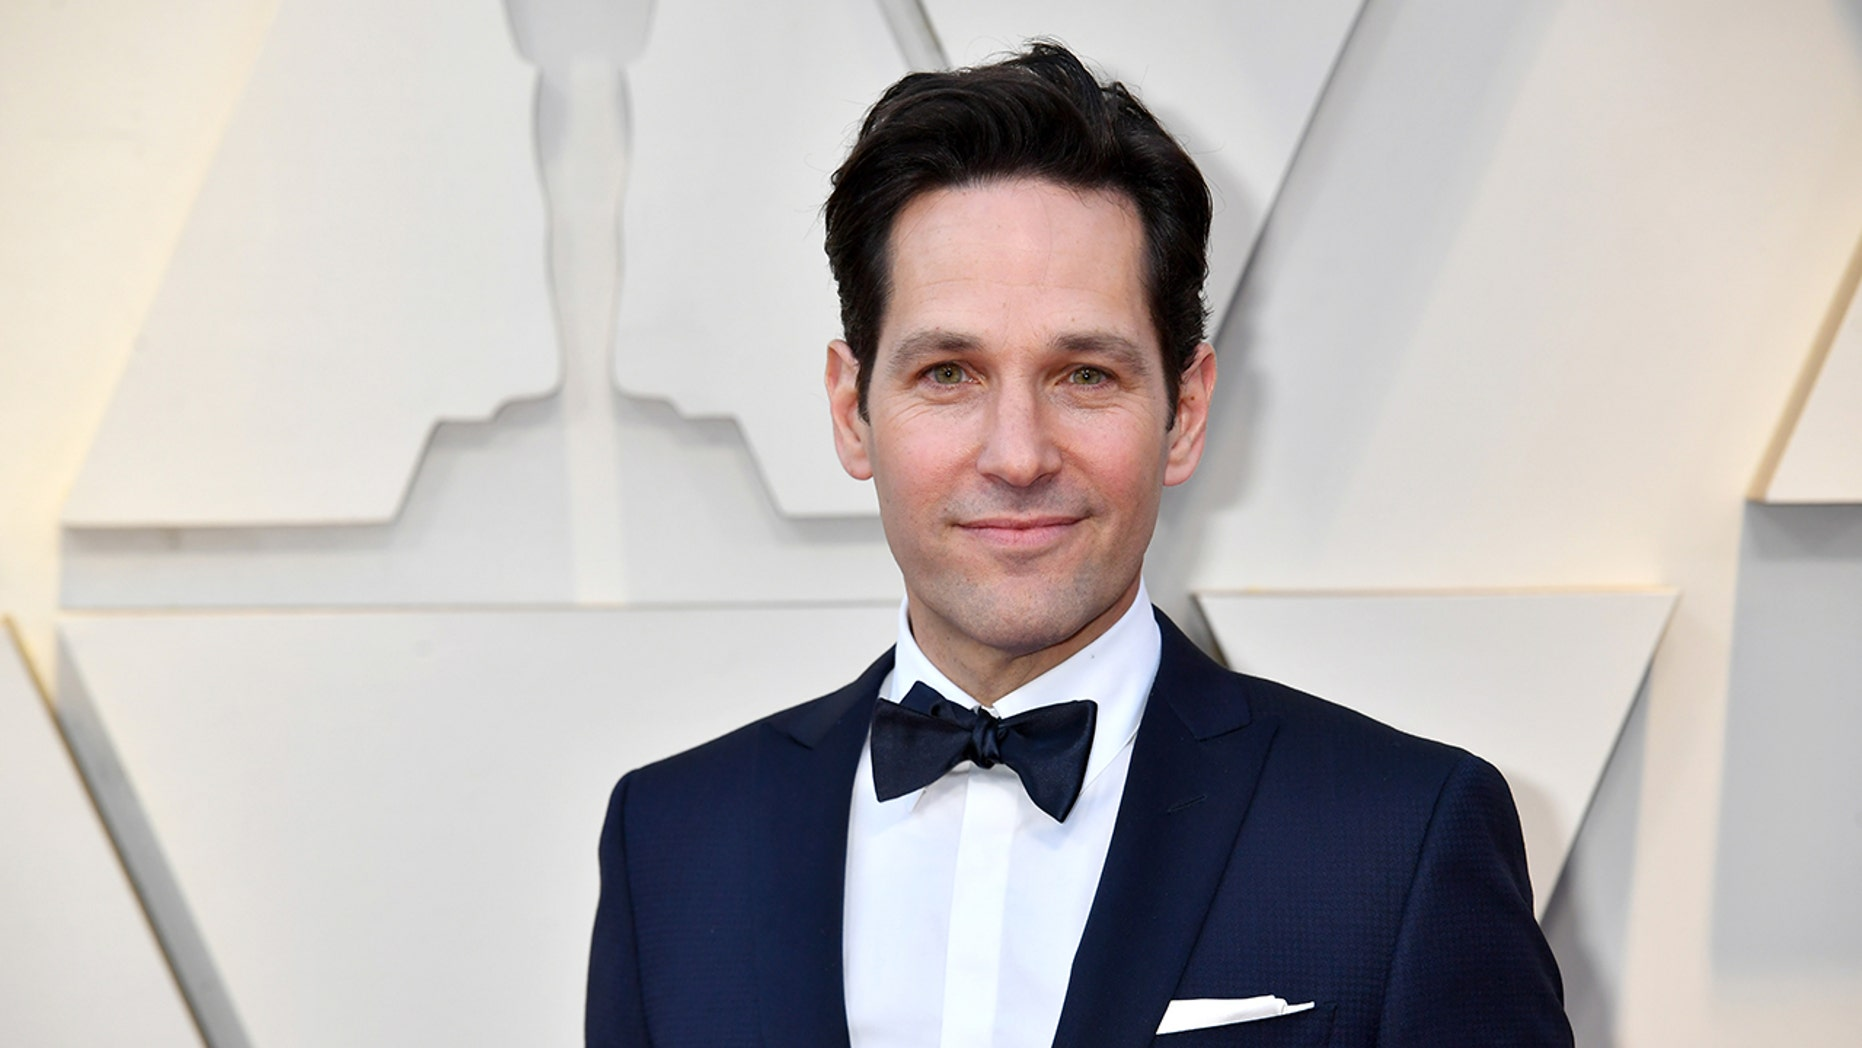 Paul Rudd attends the 91st Annual Academy Awards at Hollywood and Highland on February 24, 2019 in Hollywood, California. (Getty)